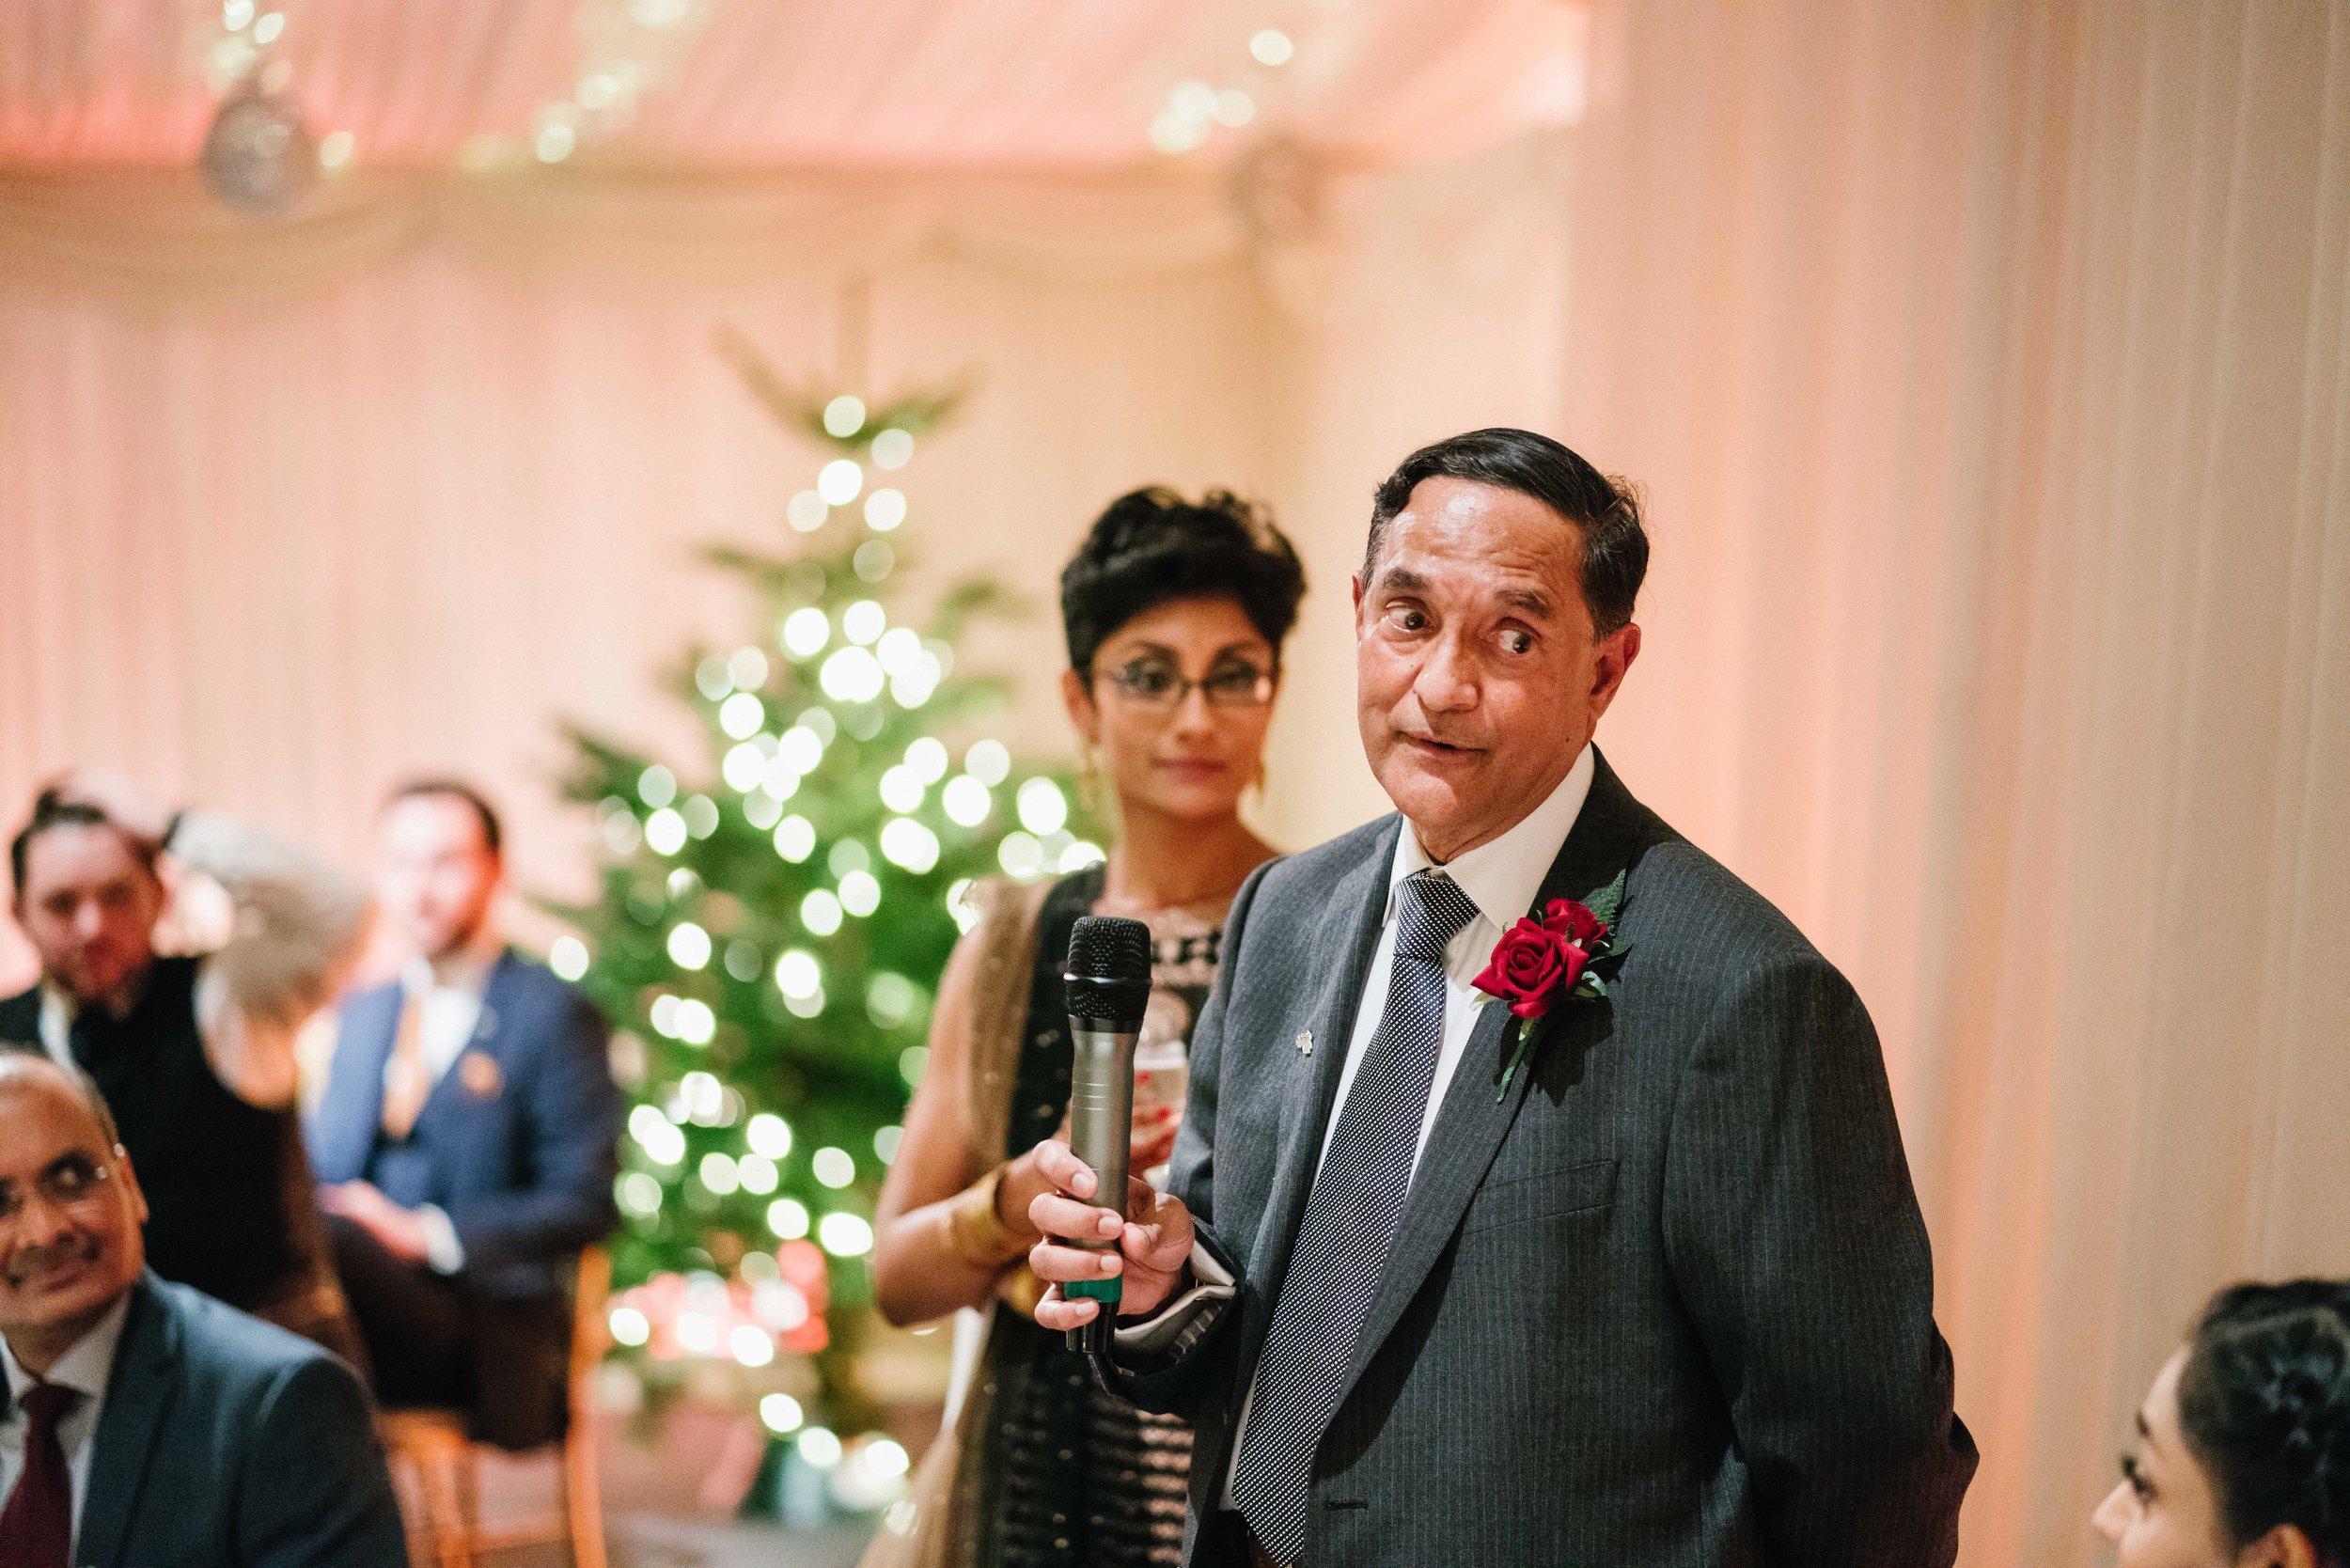 heaton-house-christmas-winter-wedding-photography-videography-manchester-66